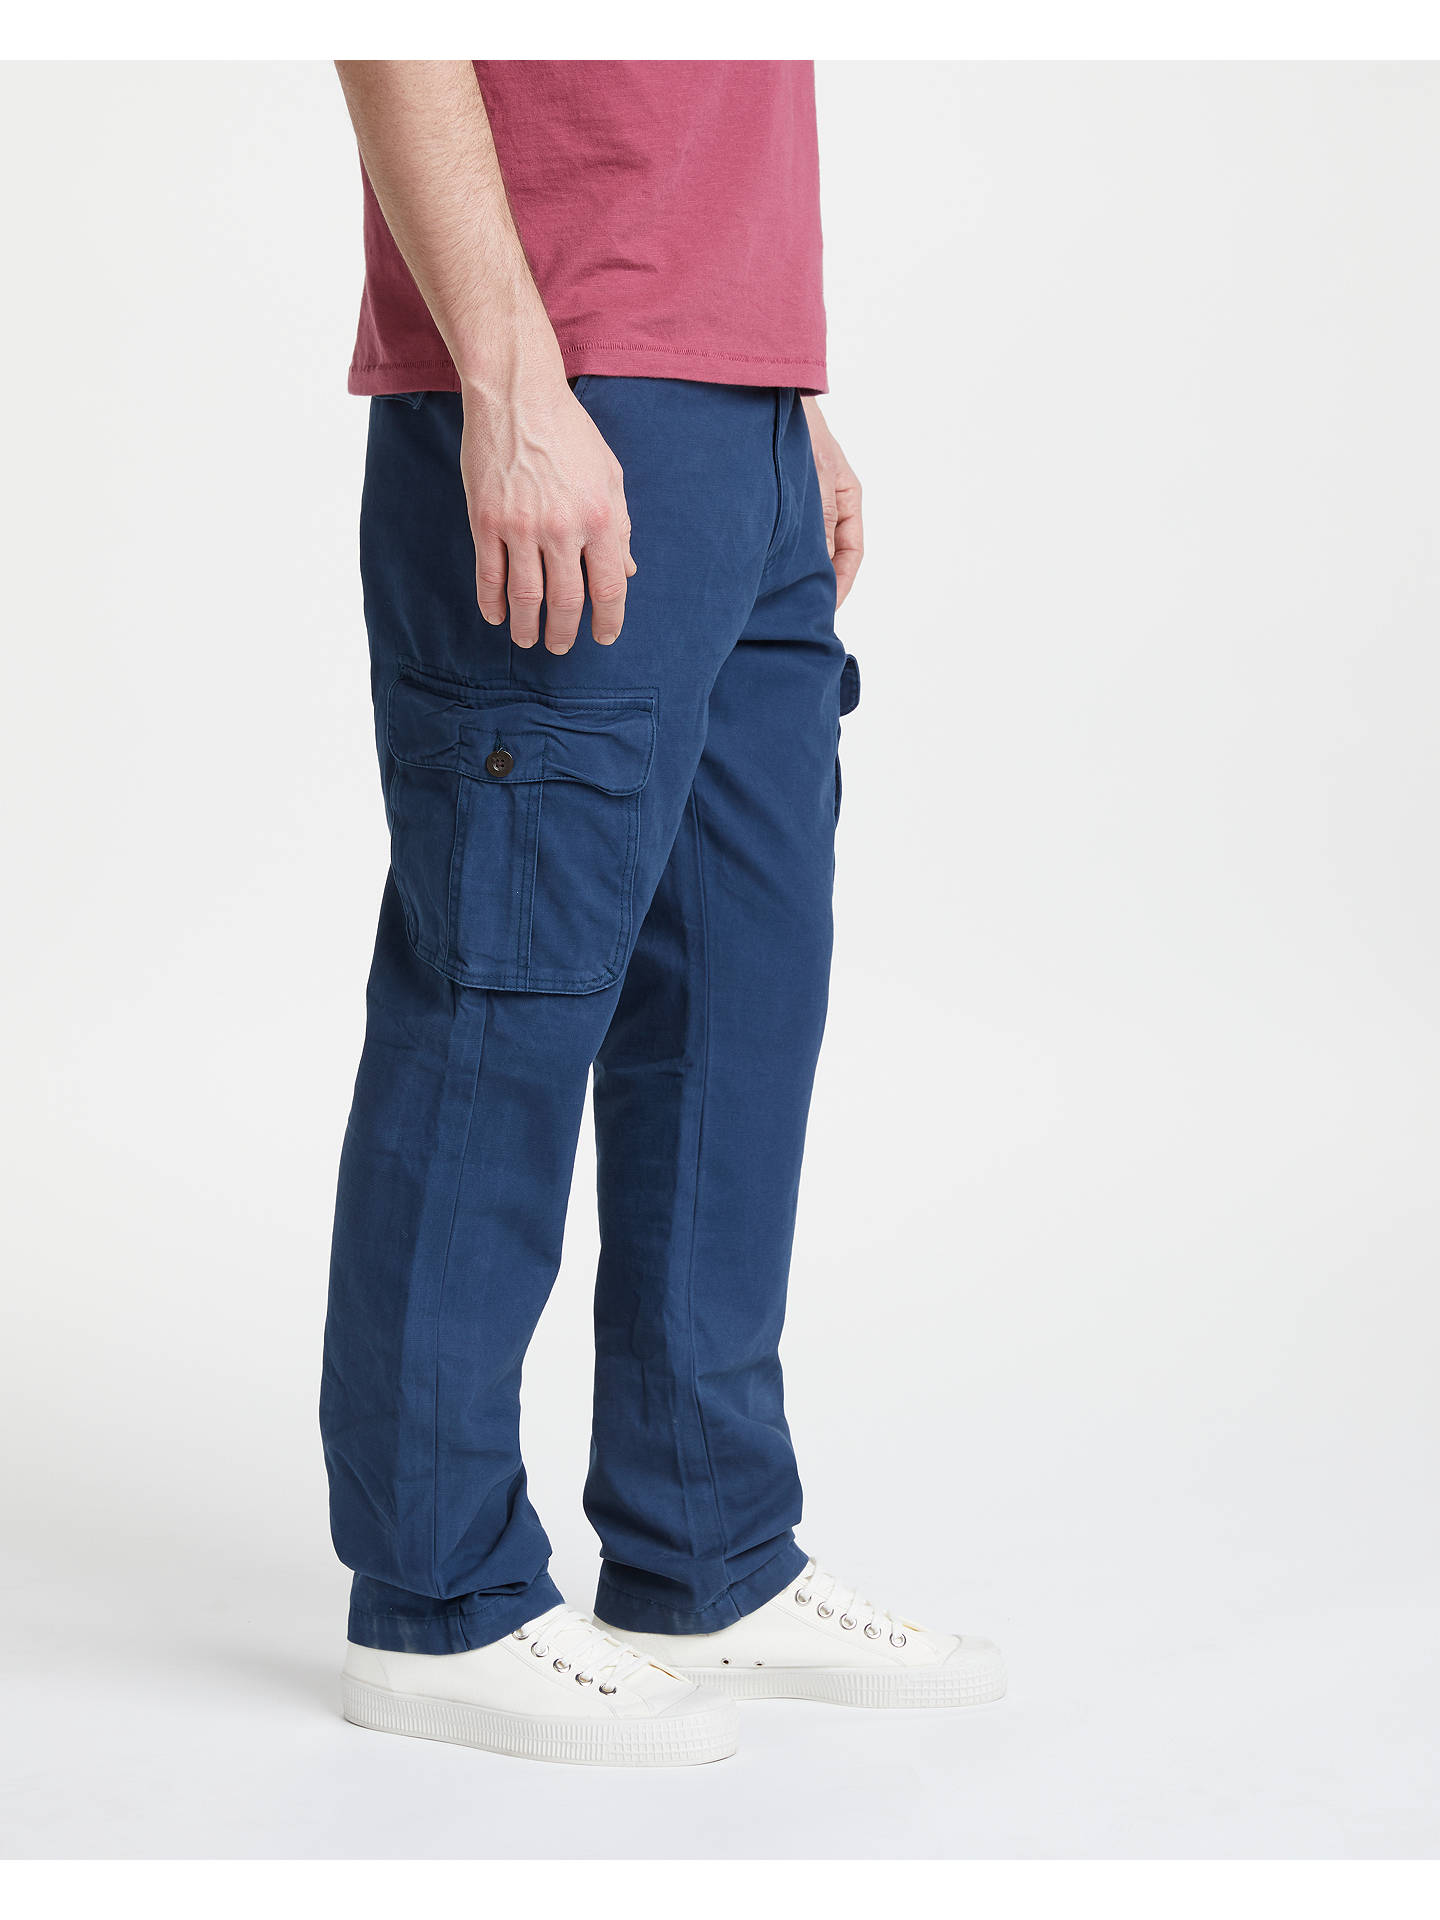 Buy John Lewis & Partners Cotton Cargo Trousers, Navy, 38R Online at johnlewis.com